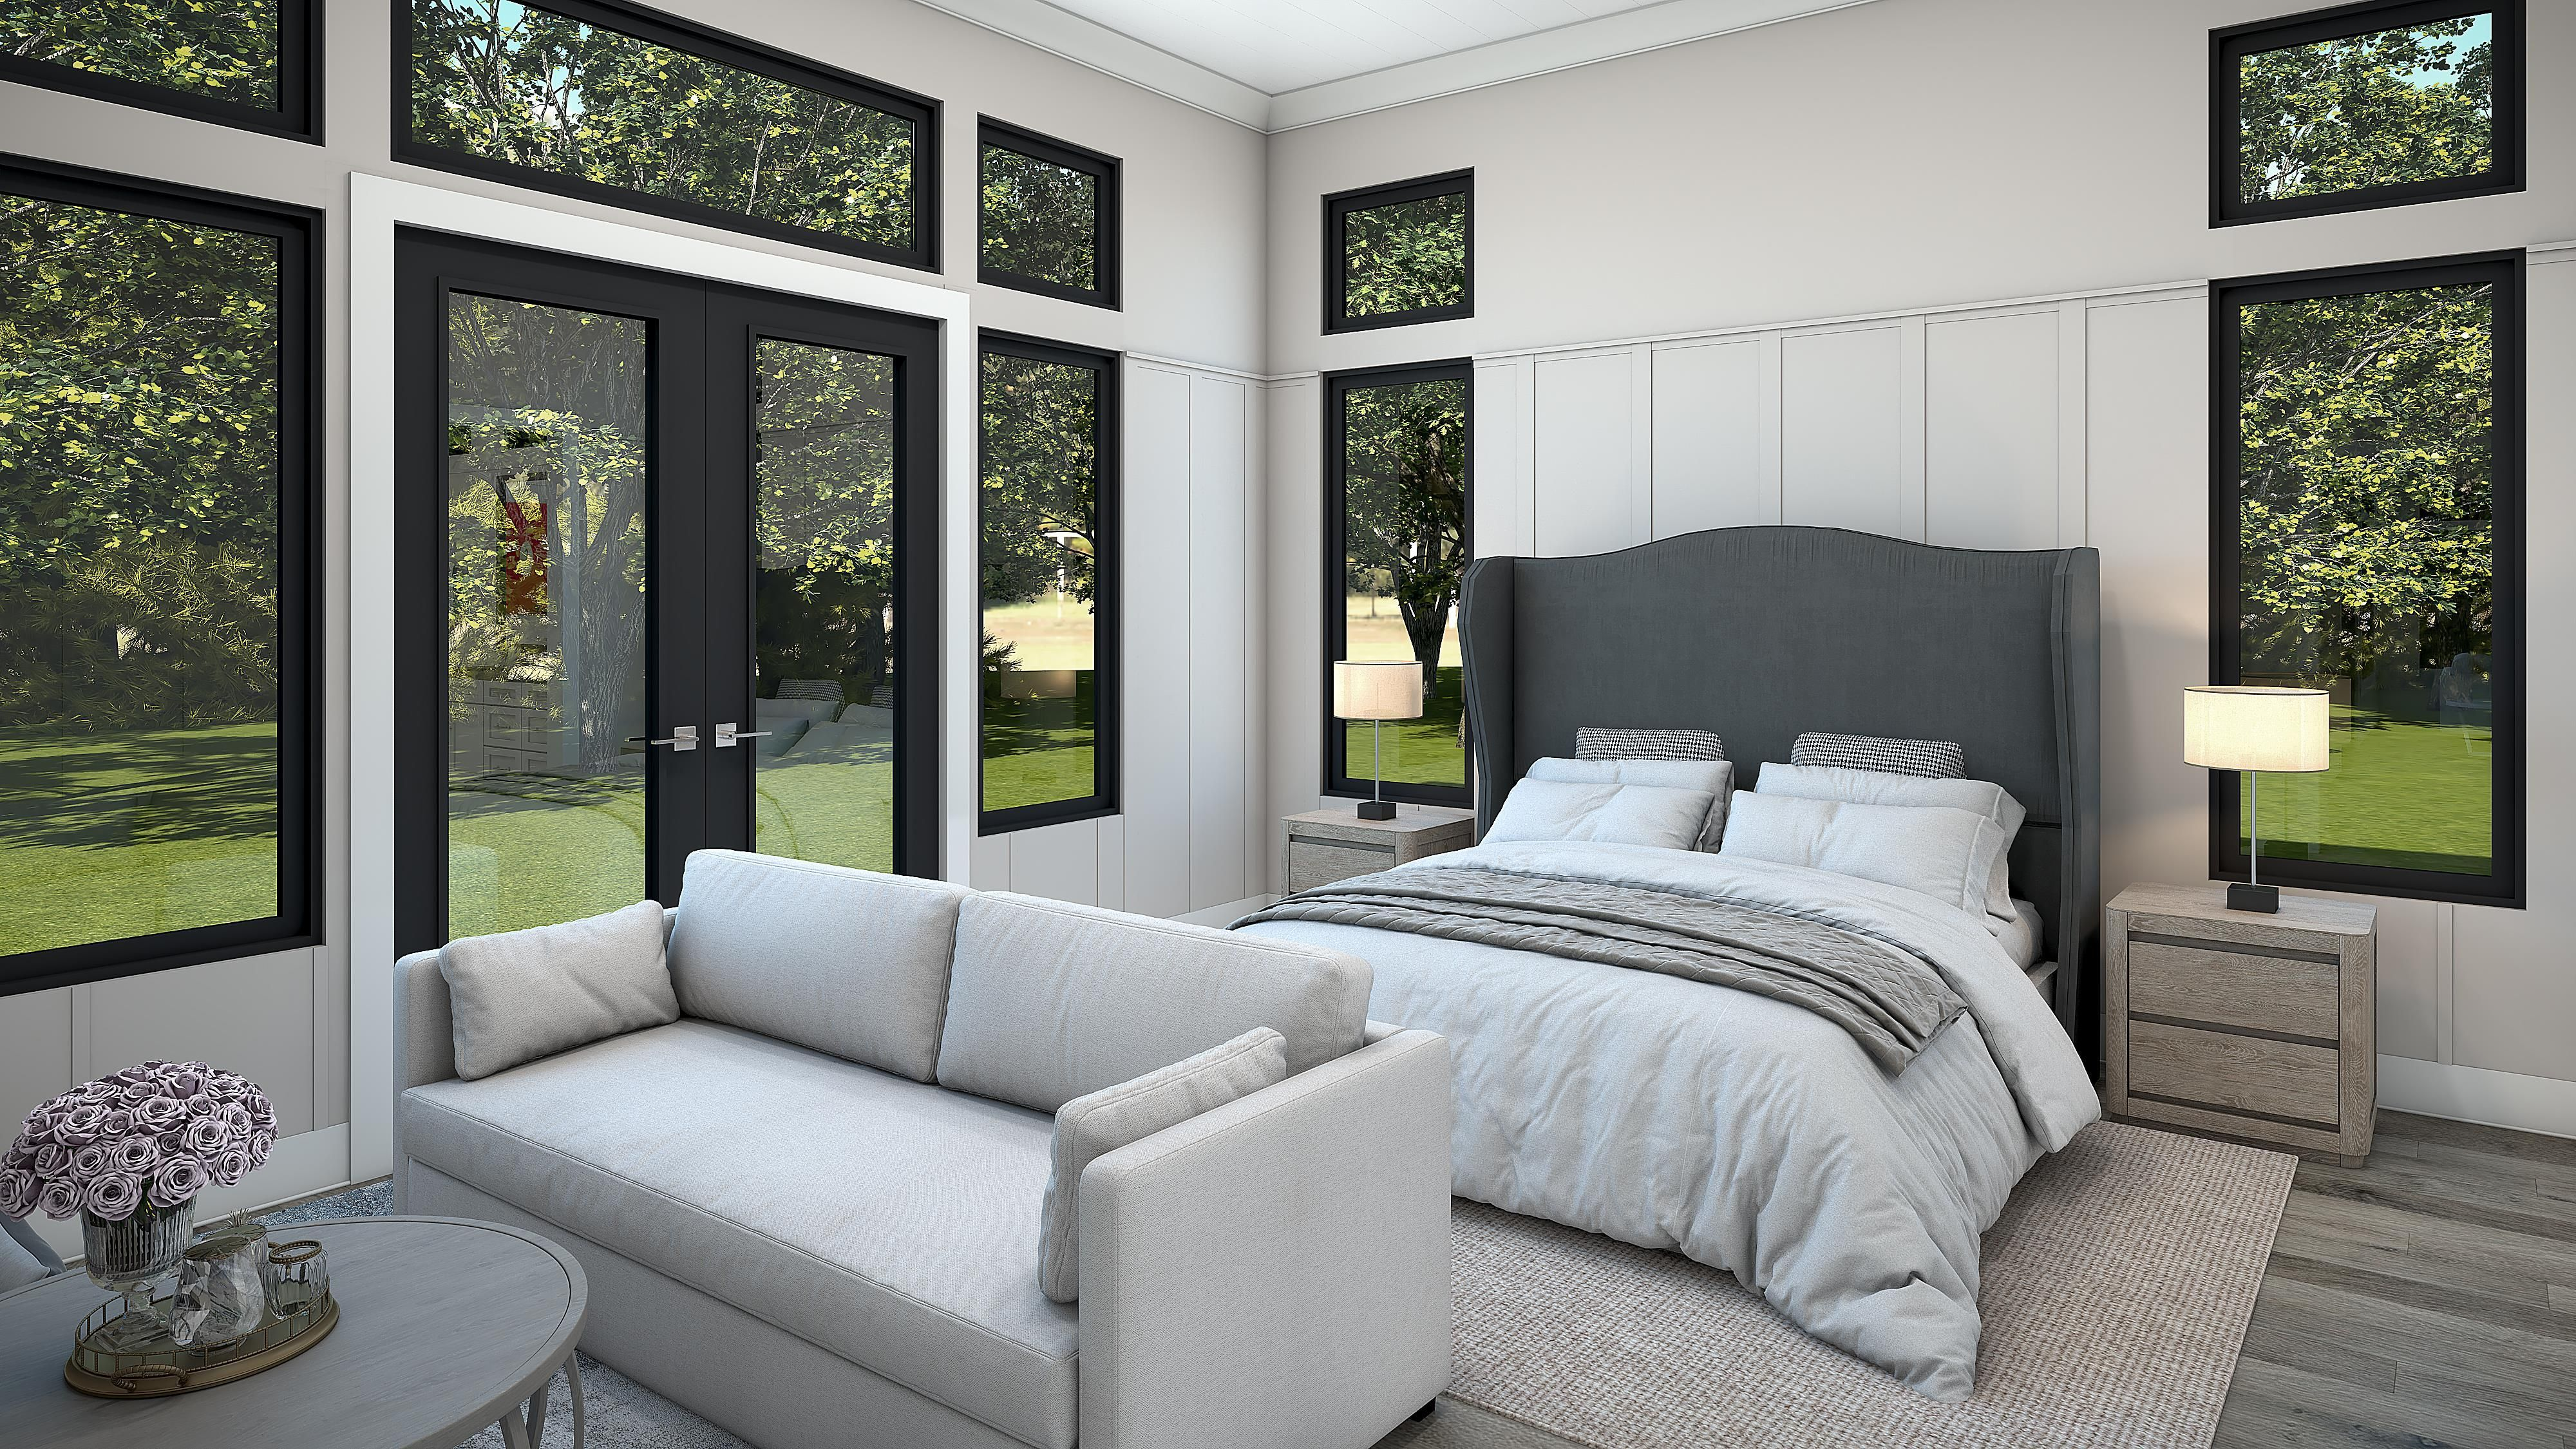 Bedroom featured in the Residence Three - Contemporary By Copper Valley  in Stockton-Lodi, CA